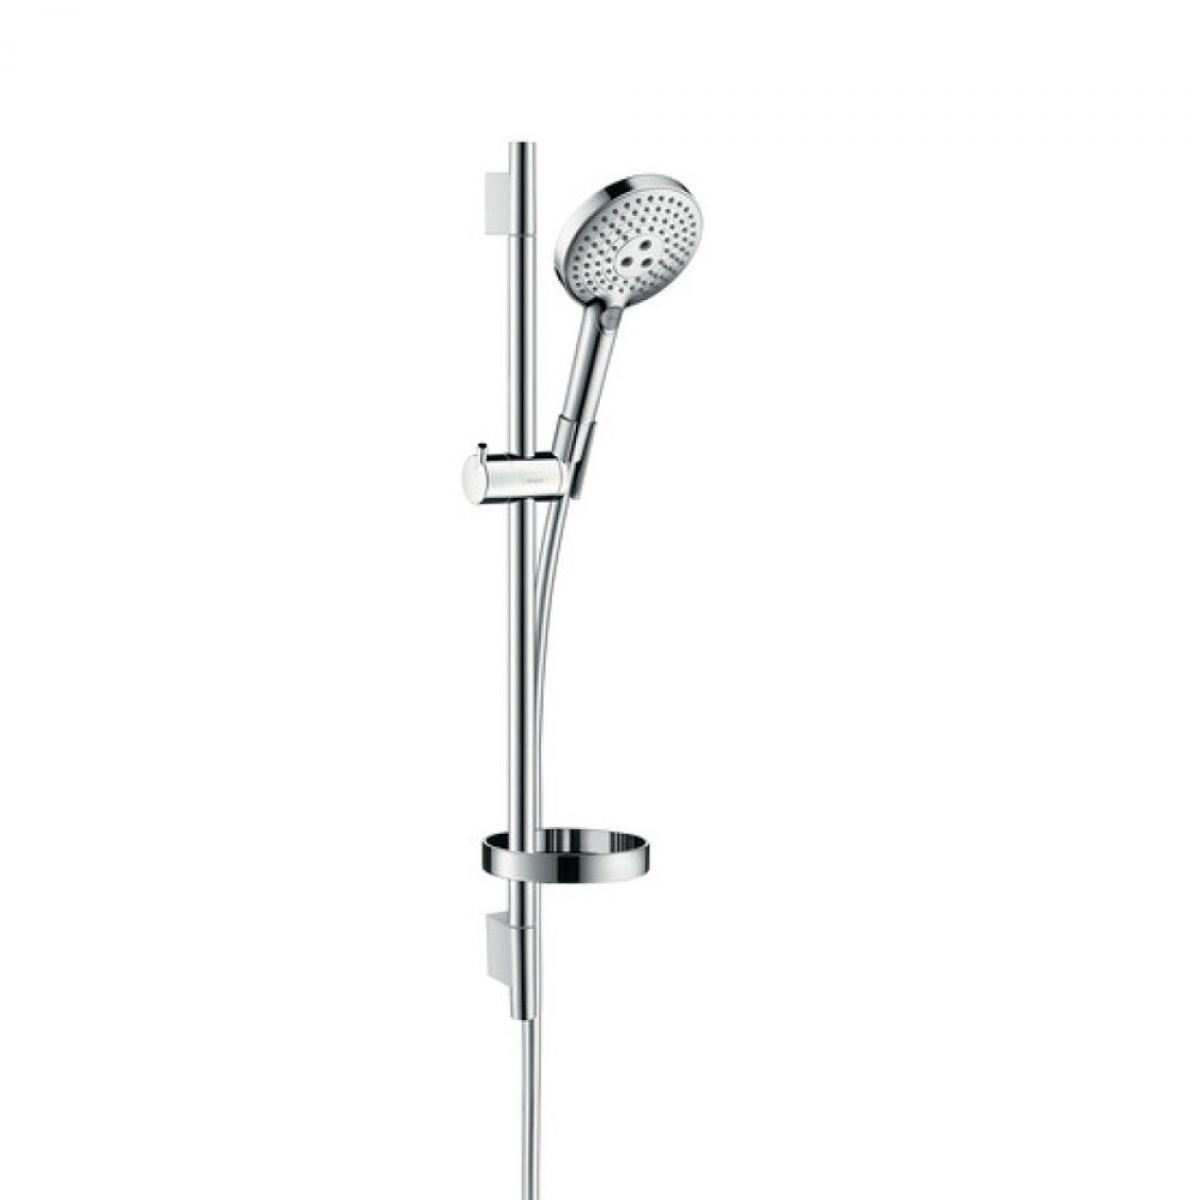 hansgrohe raindance select s 120 3jet shower set uk bathrooms. Black Bedroom Furniture Sets. Home Design Ideas